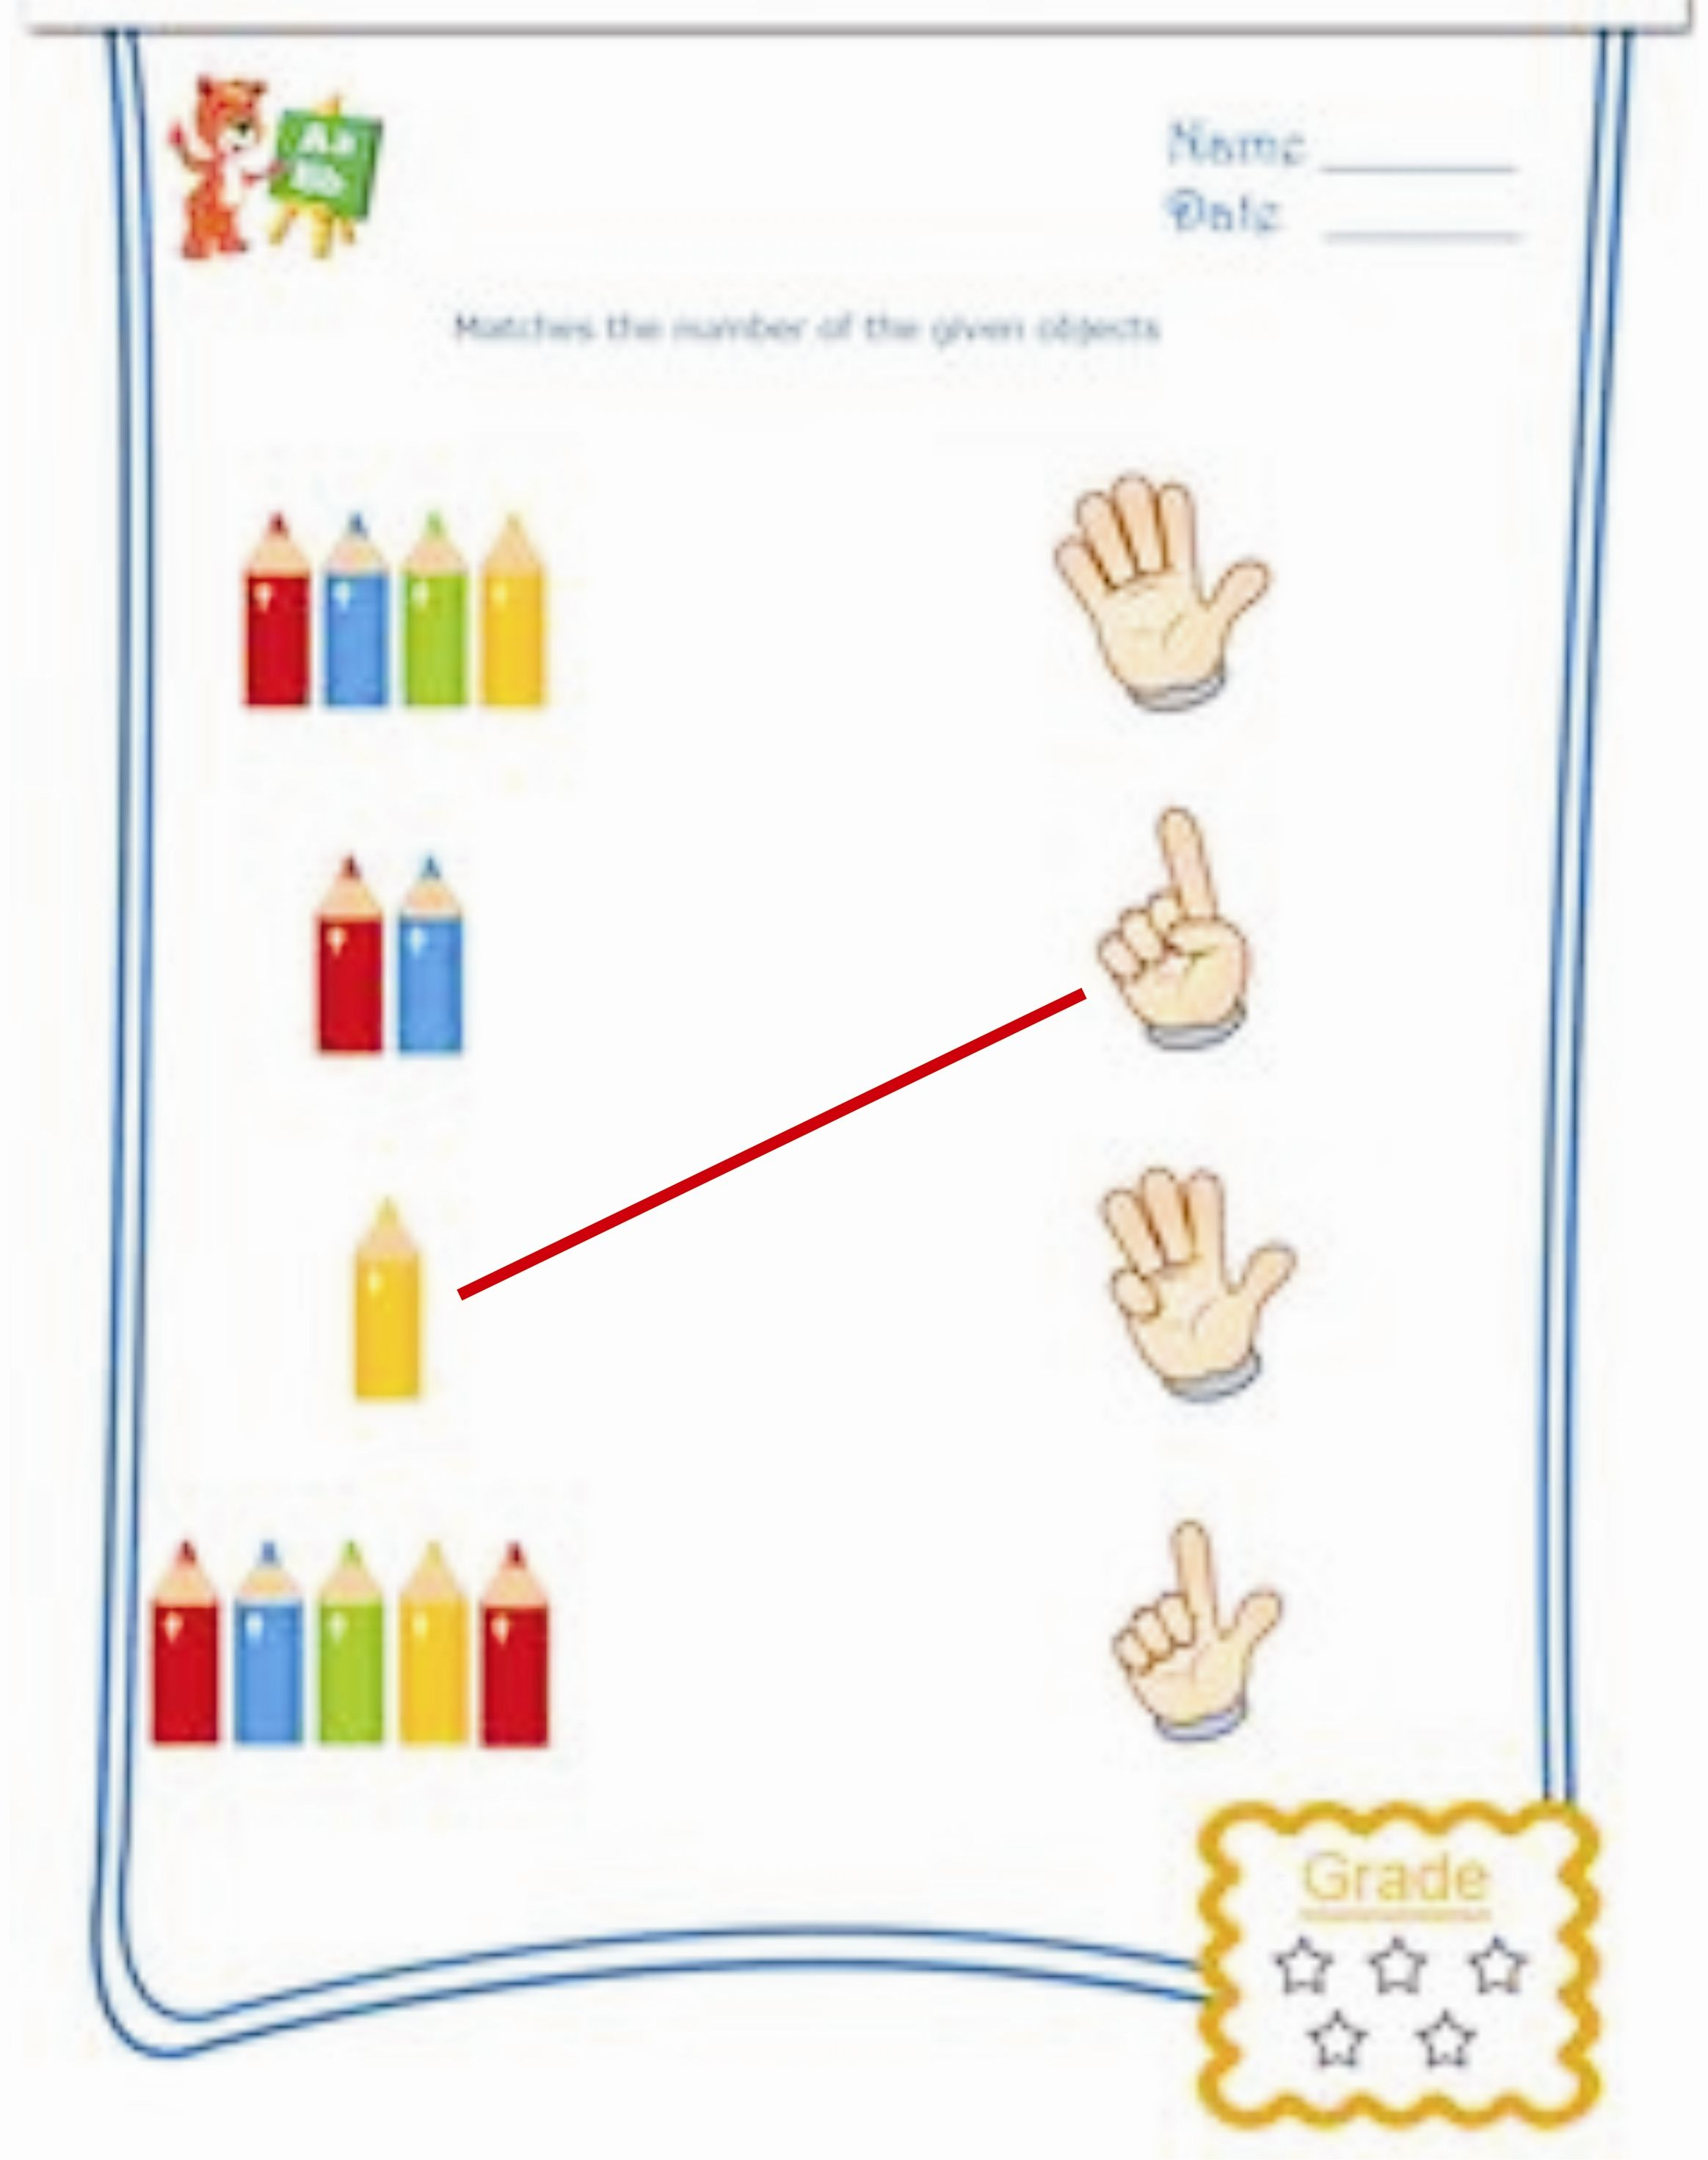 Match Pairs Draw Lines To Connect The Matching Pictures Worksheets For Kids Puzzles For Kids Quiz [ 2942 x 2327 Pixel ]